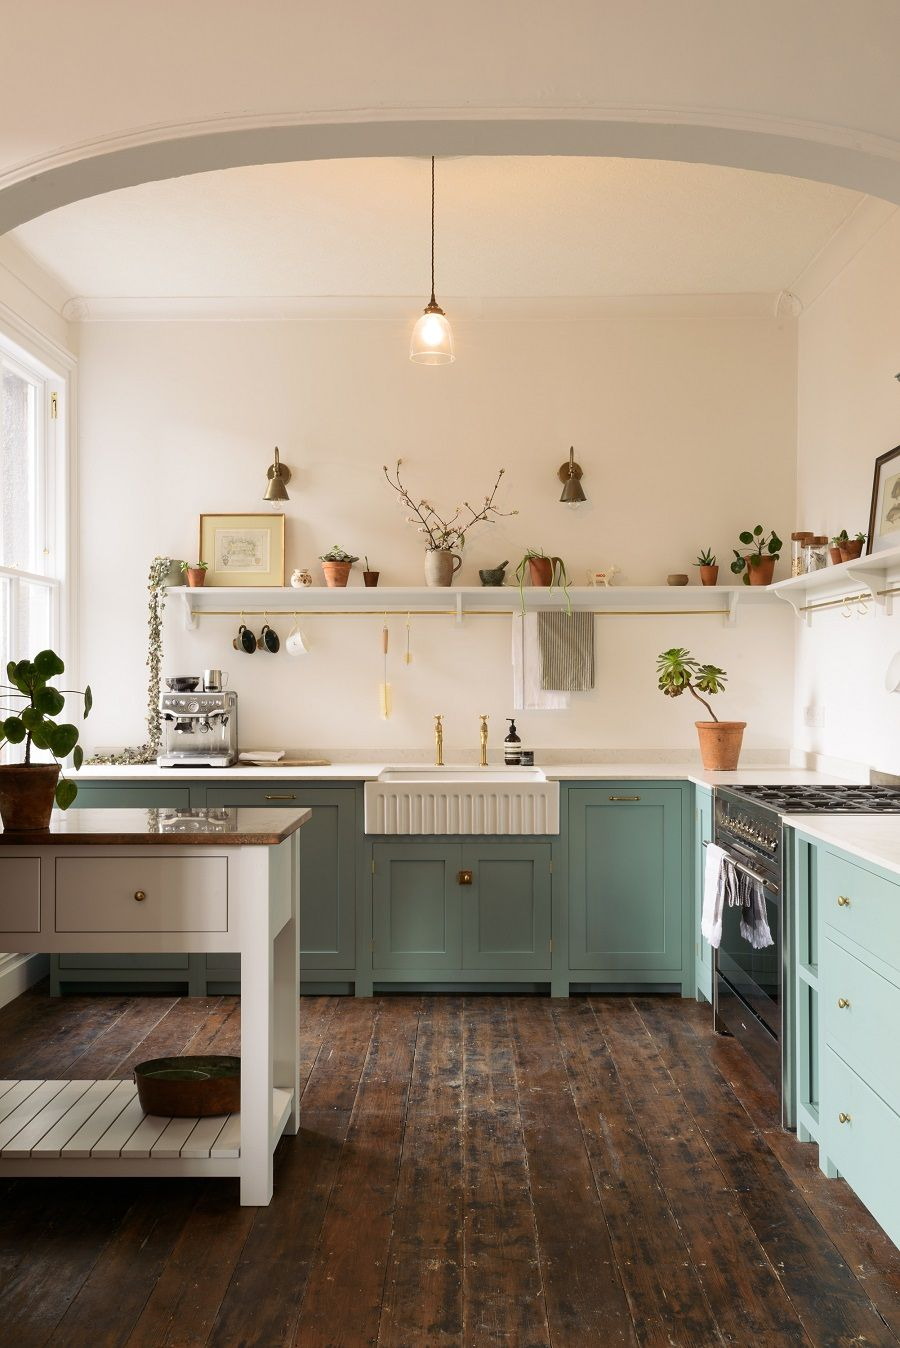 a-delightfully-simple-kitchen-in-an-edwardian-villa-that-evokes-a-different-era-8